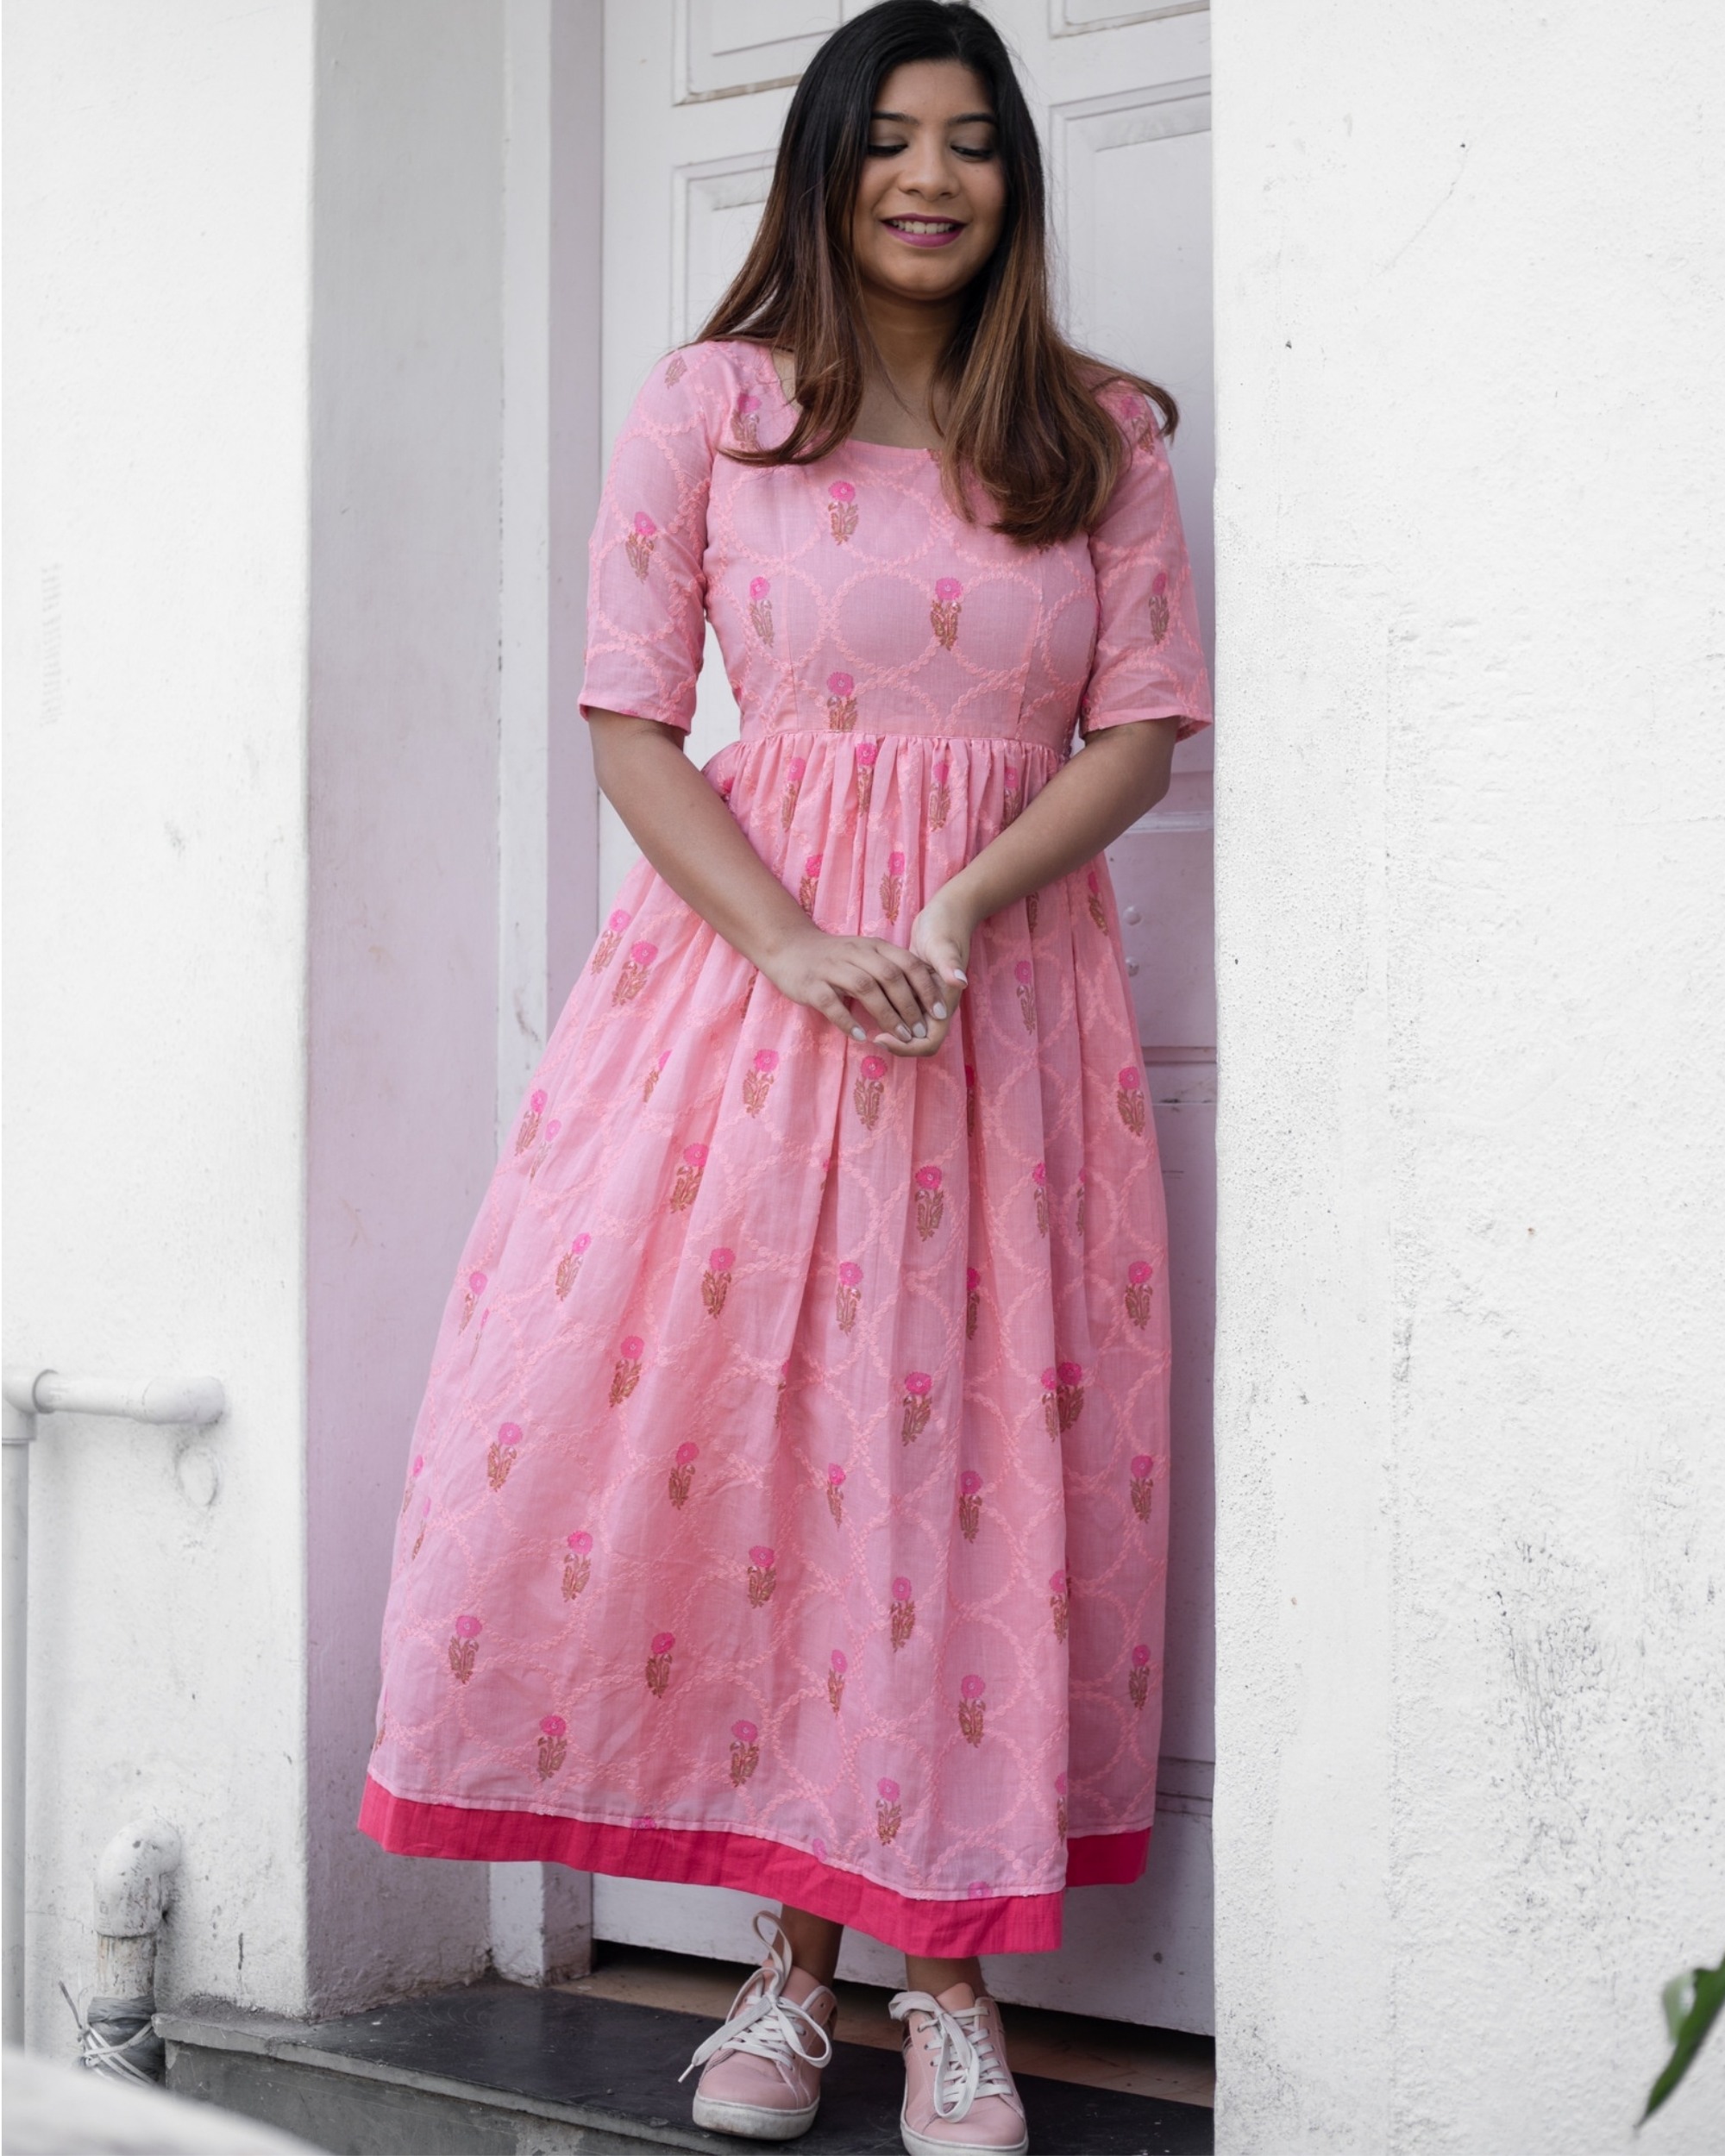 Taffy pink floral embroidered dress